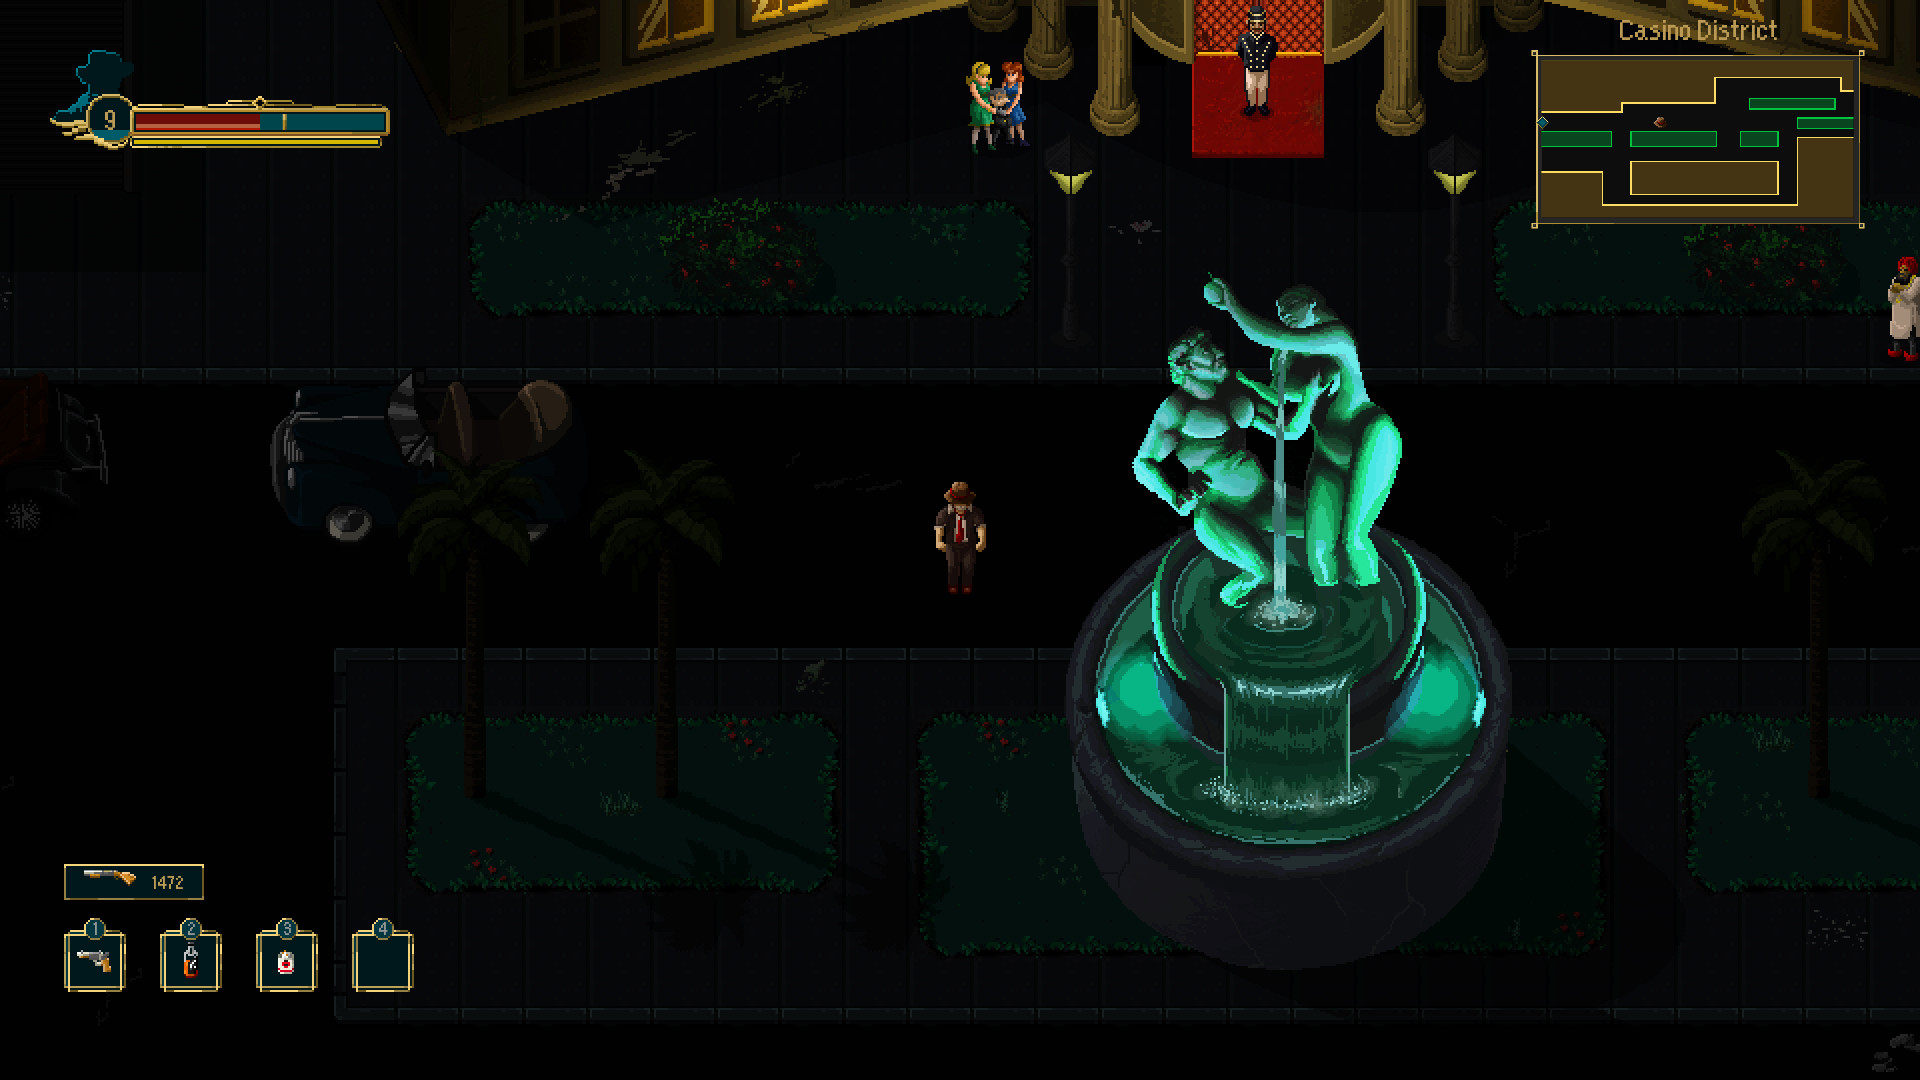 A top-down view of a police detective in Pecaminosa. He is standing next to a fountain at night. There are two women, one with blonde hair and a green dress, and the other with brown hair and blue clothes, standing next to a hotel foyer. The screen is very dark.